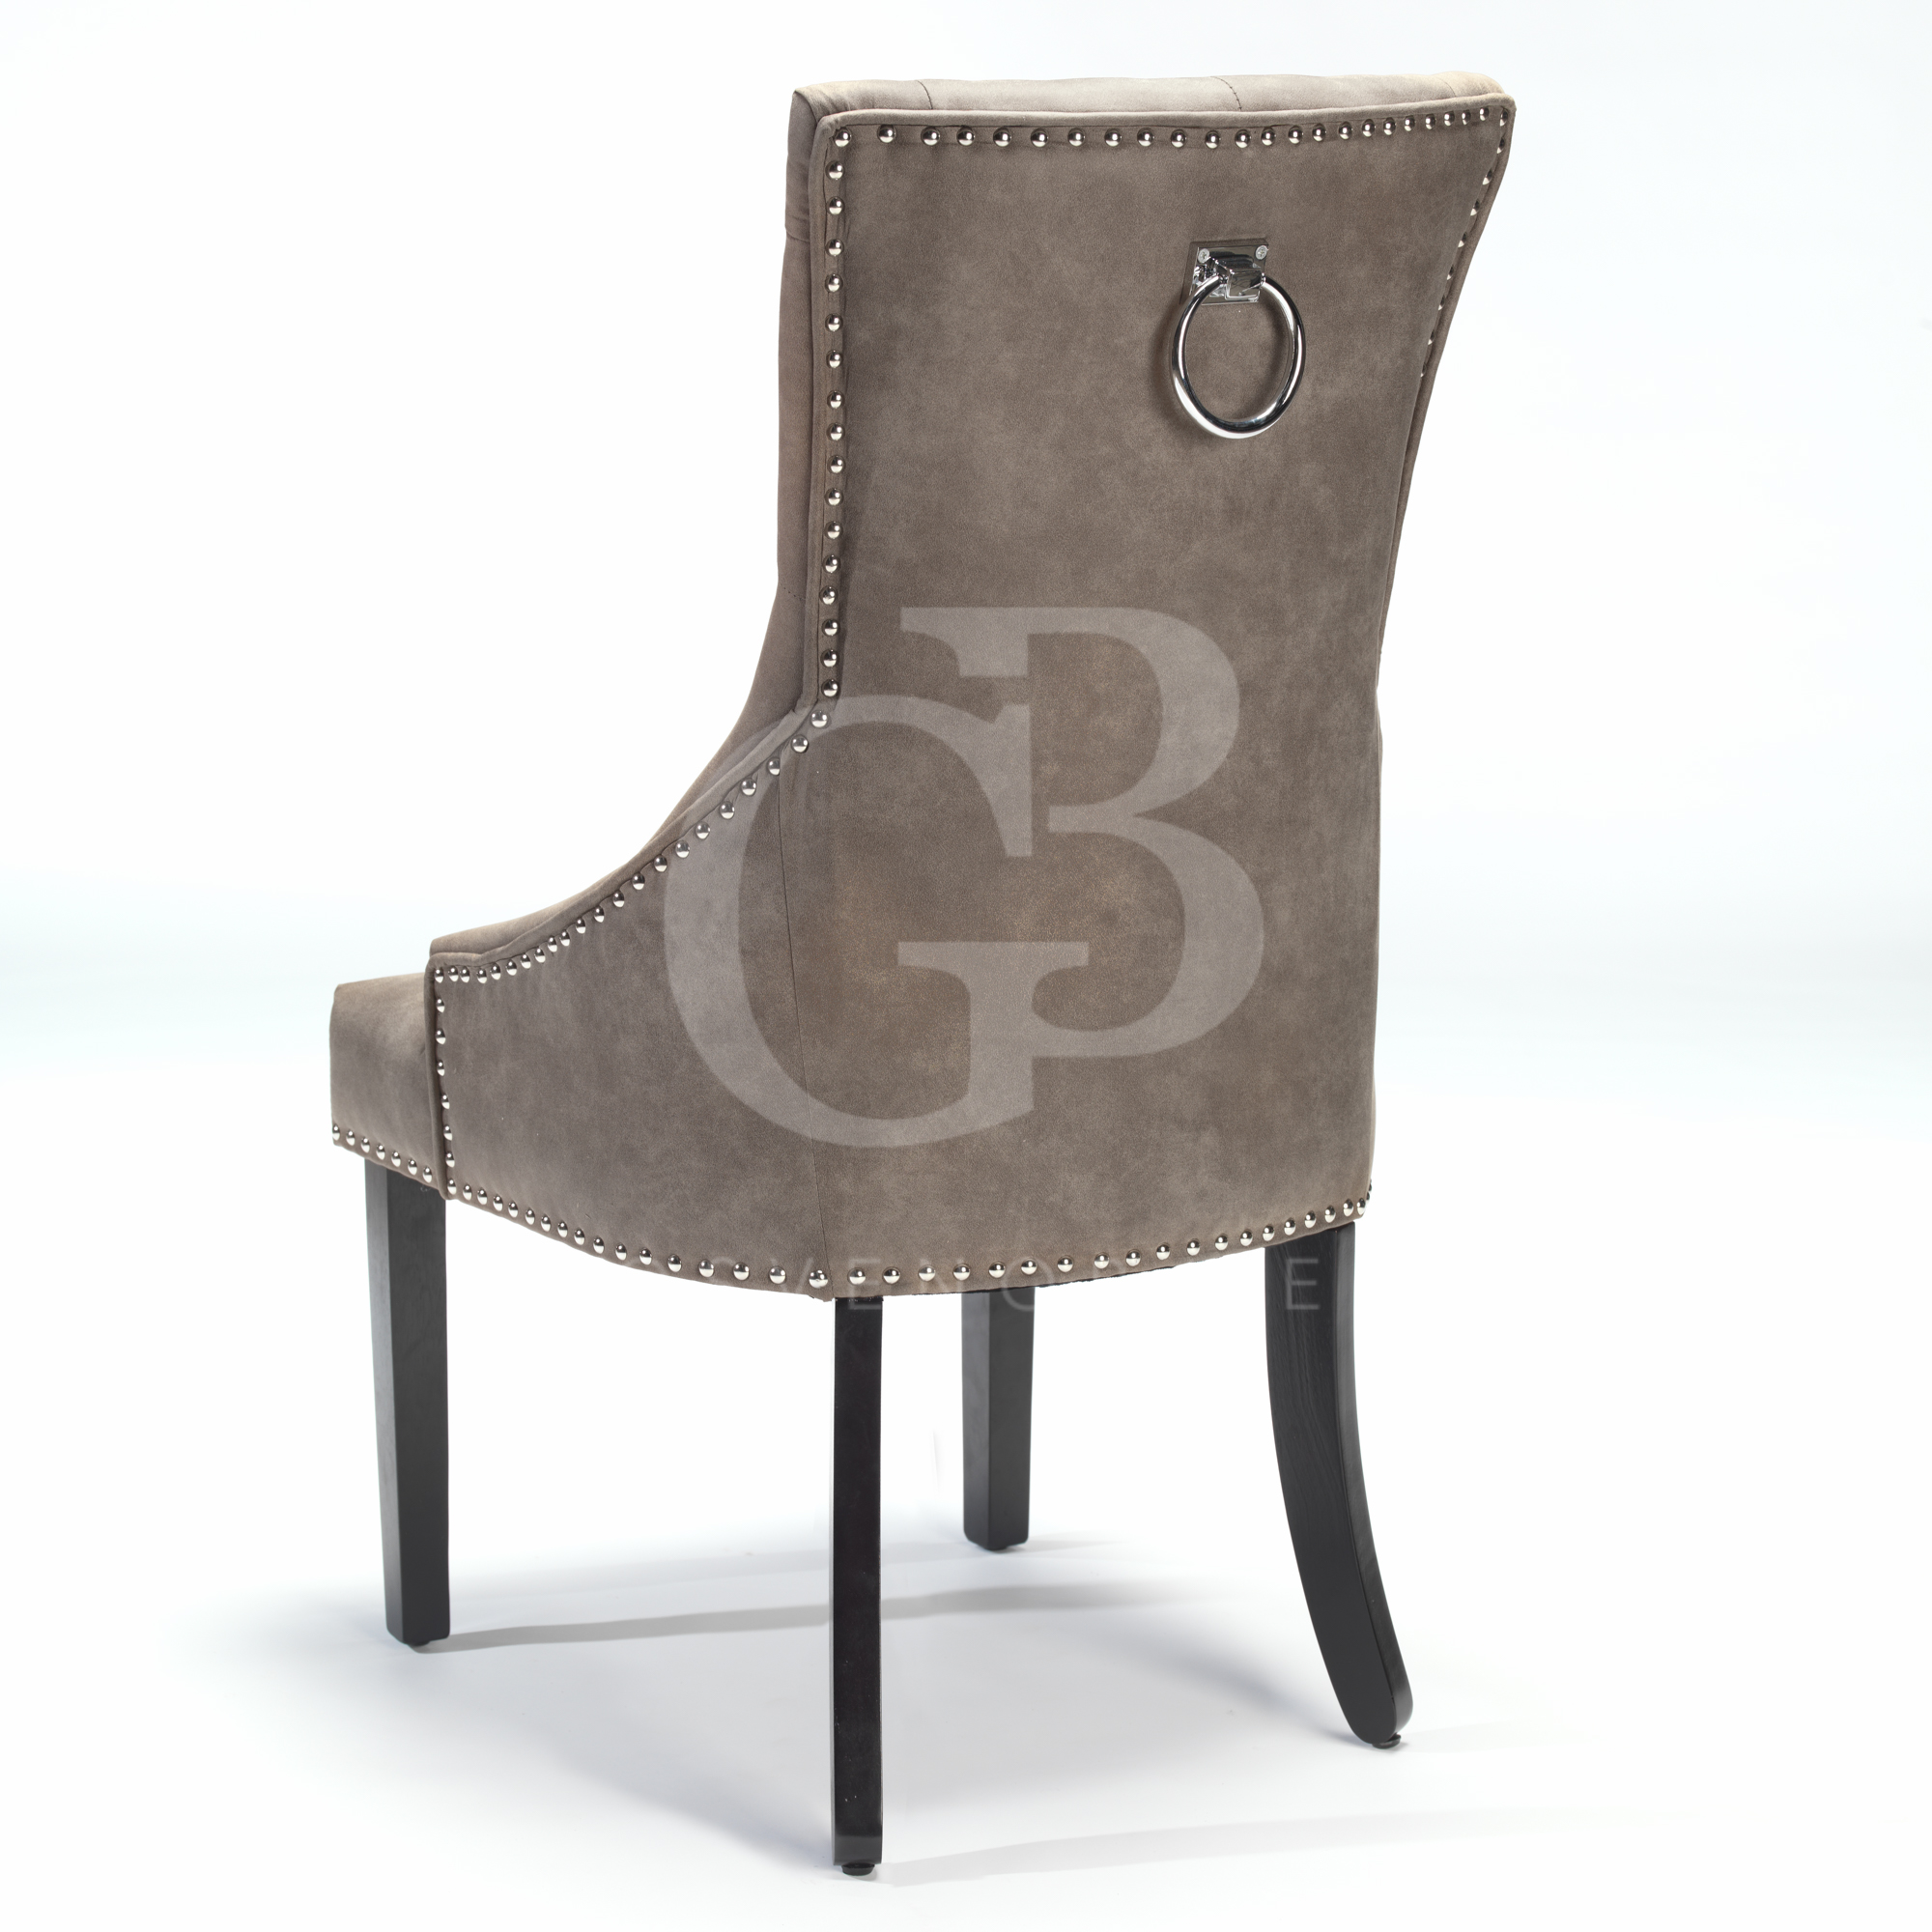 upholstered scoop back dining chairs ergonomic chair victoria bc new buttoned with studs